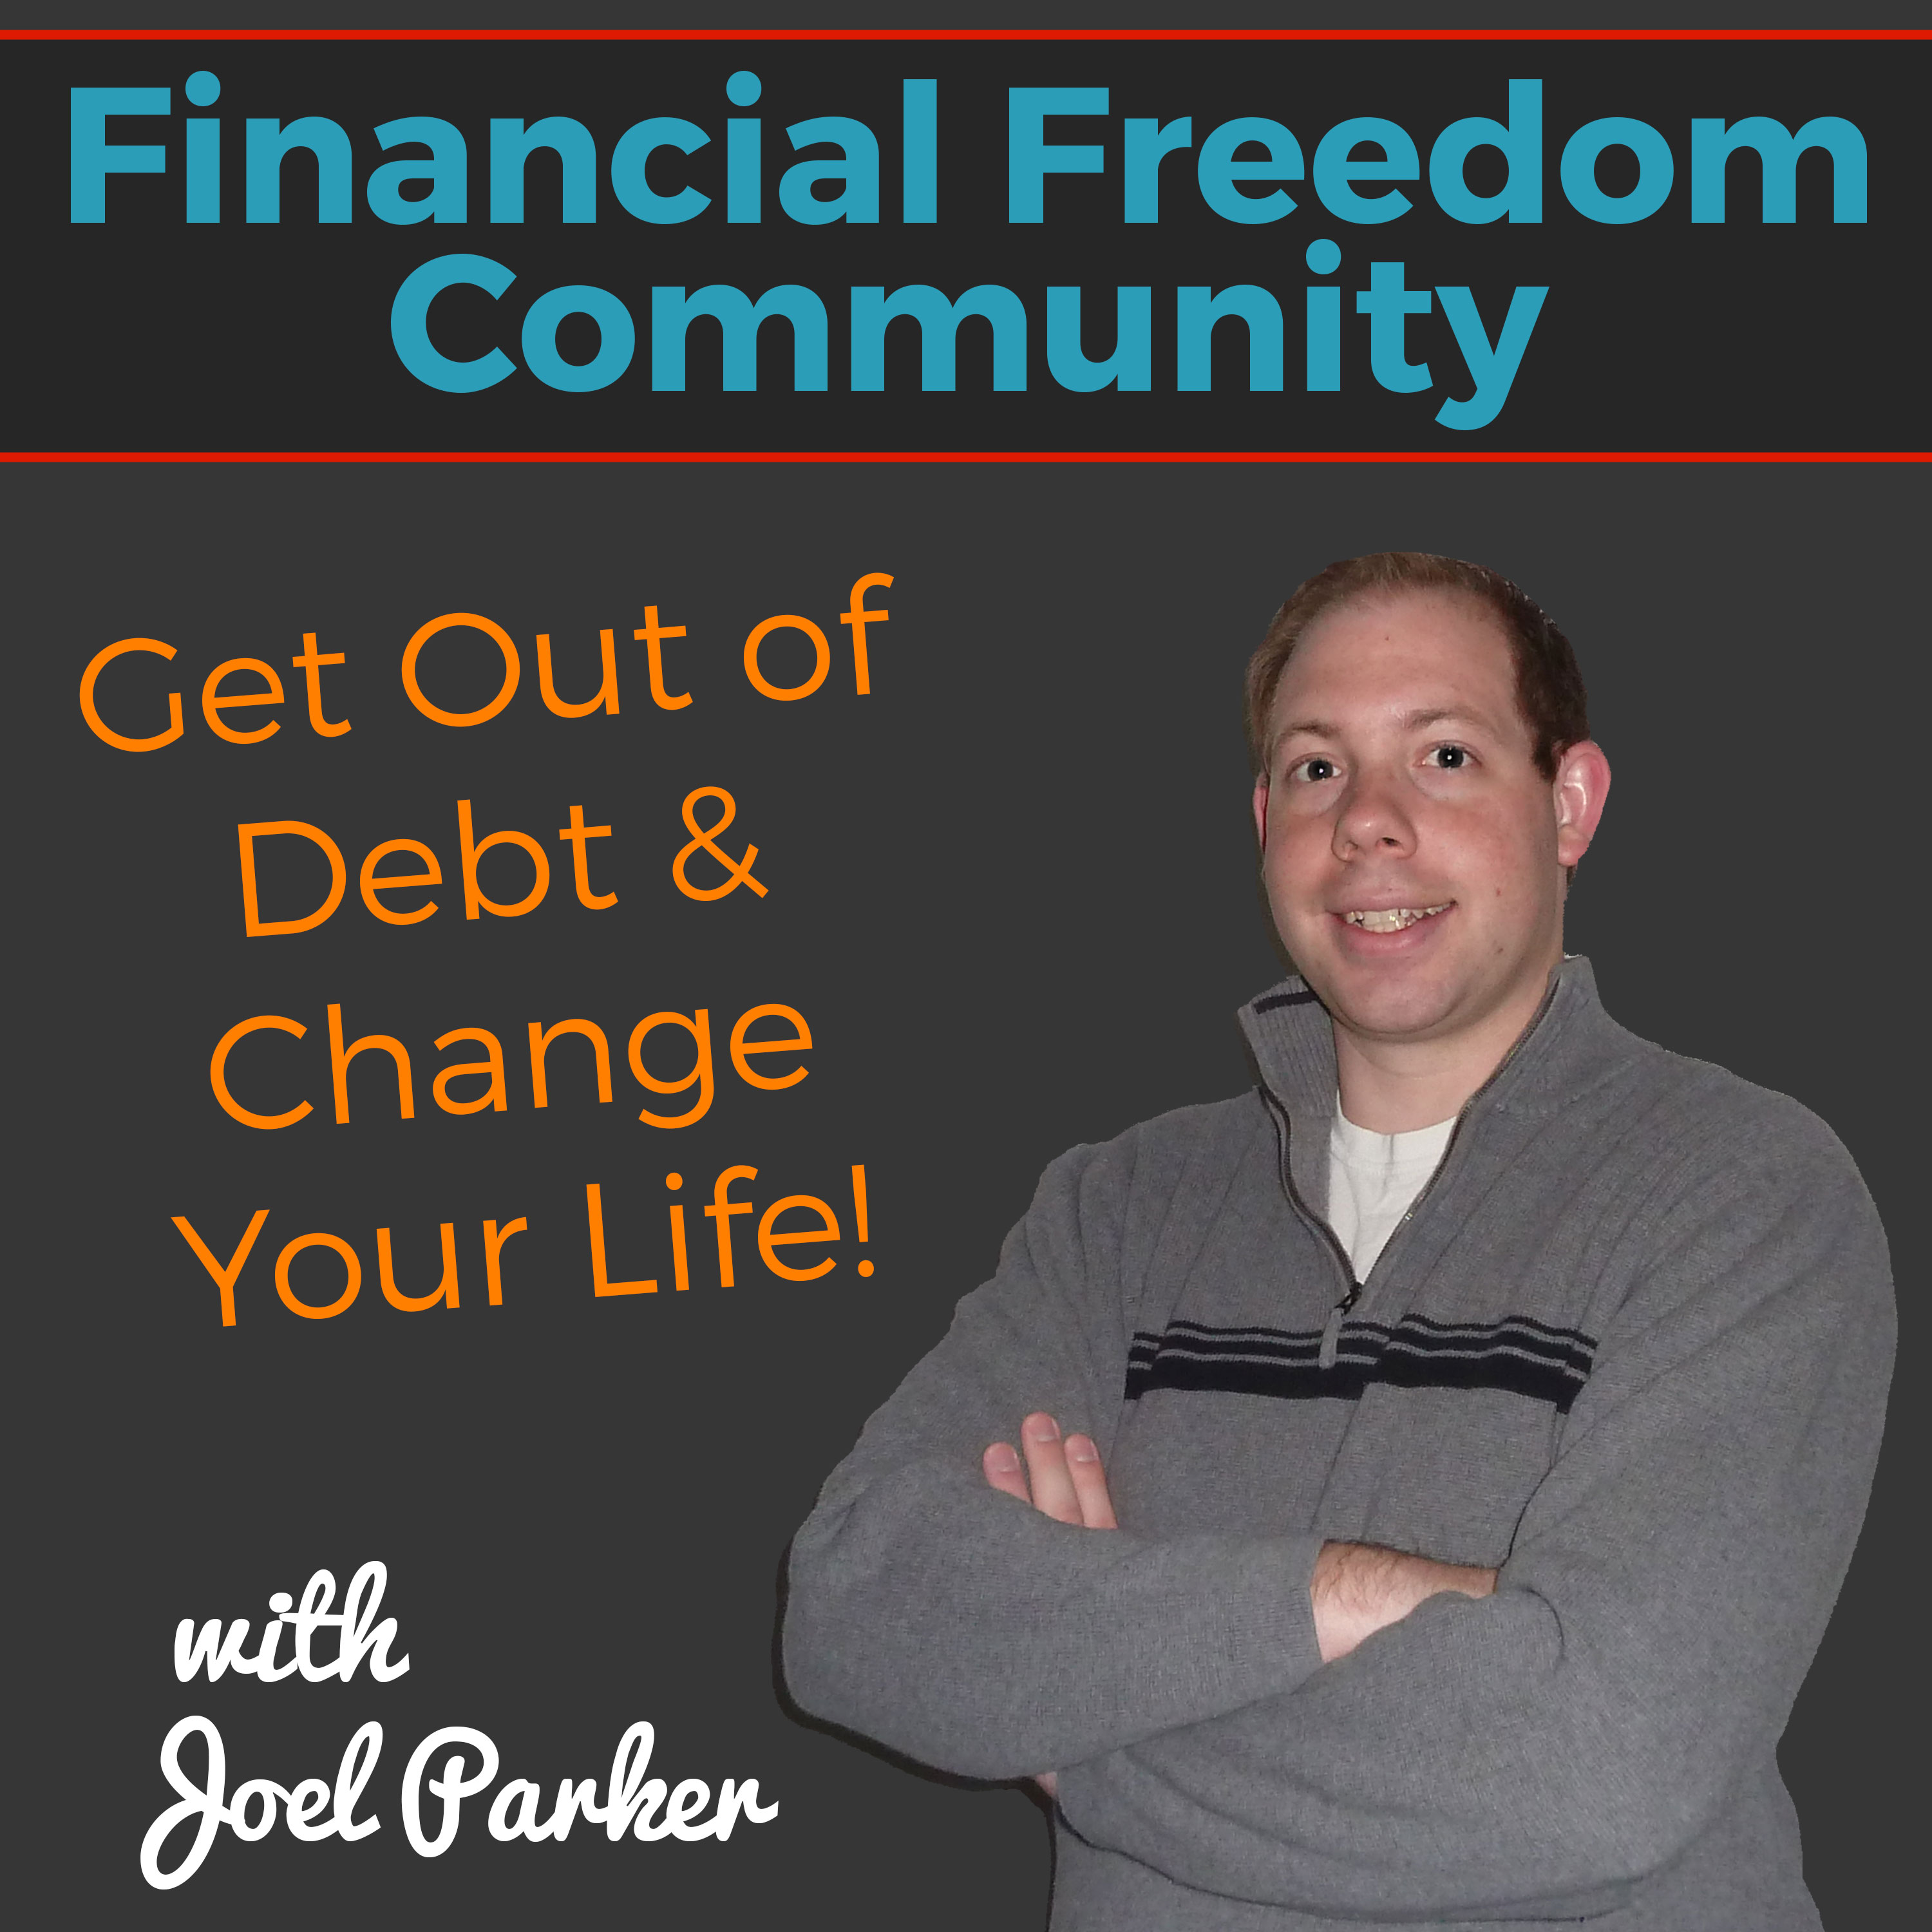 Debt Financing: The Financial Freedom Community Podcast: Personal Finance